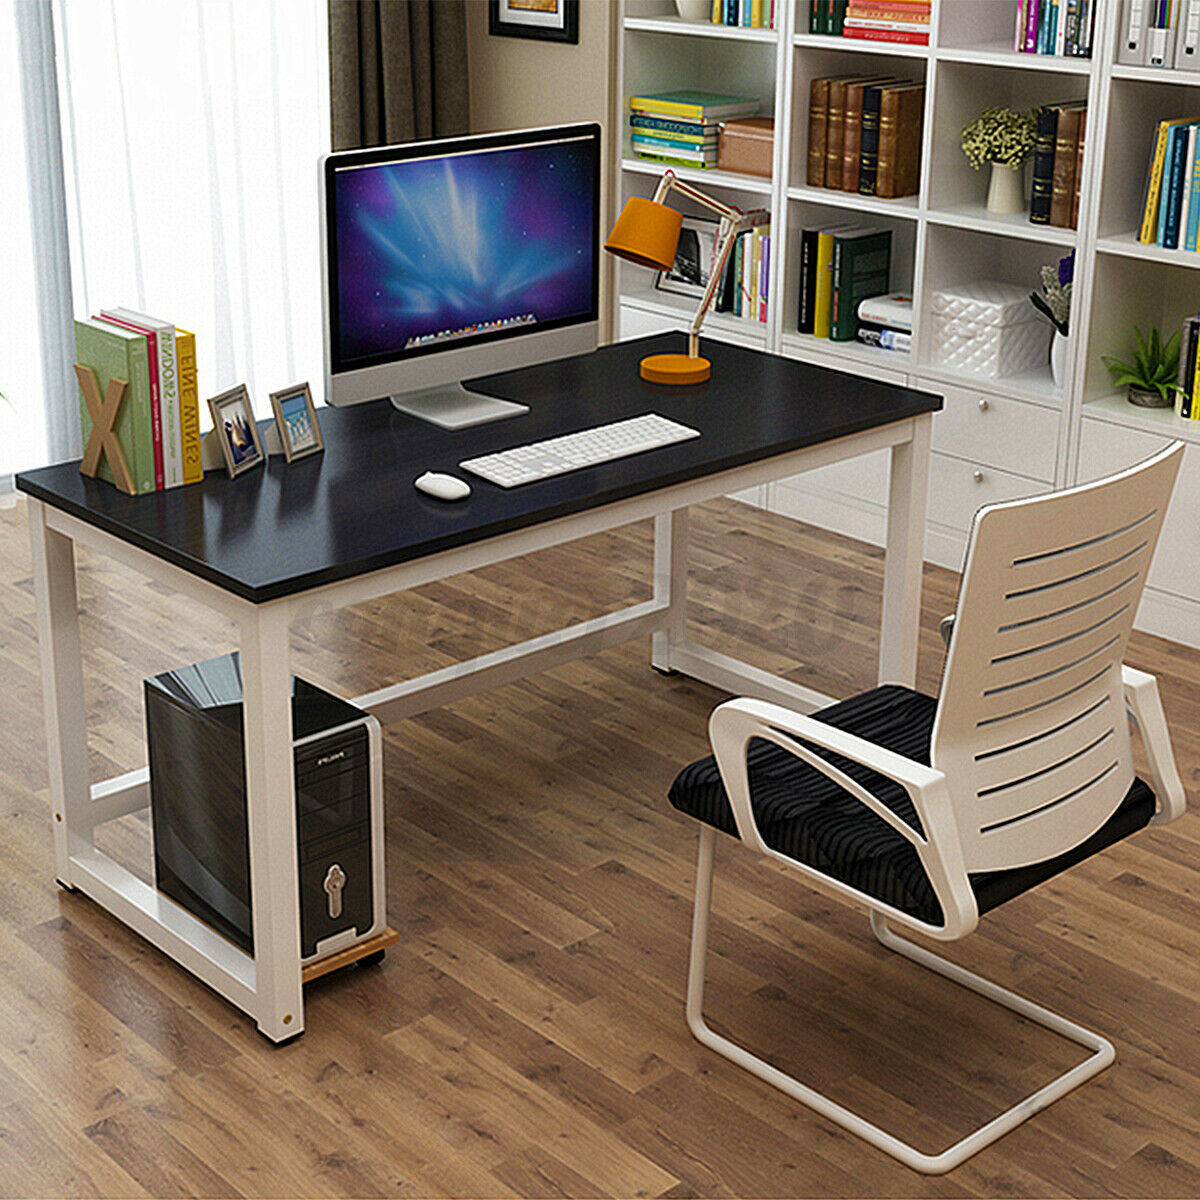 Computer Desk PC Gaming Laptop Table Study Workstation Home Office Furniture